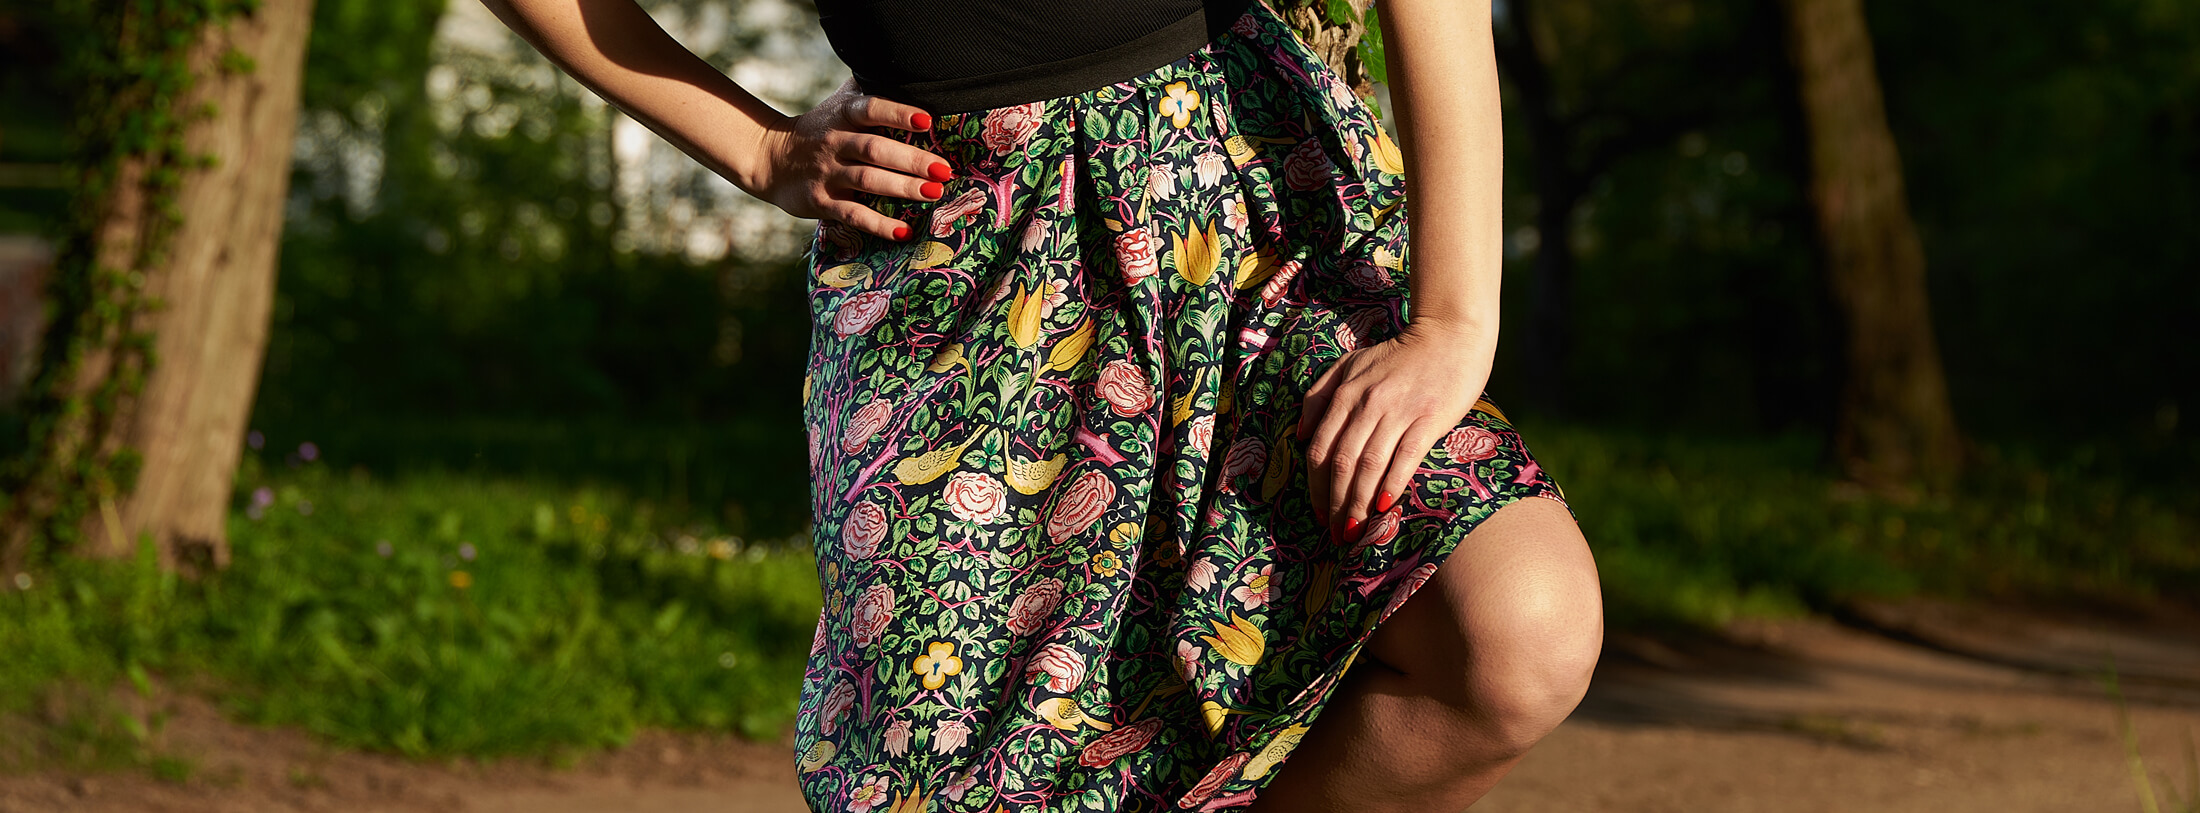 Wearing Amélie, pleated silk twill skirt with floral print in the park